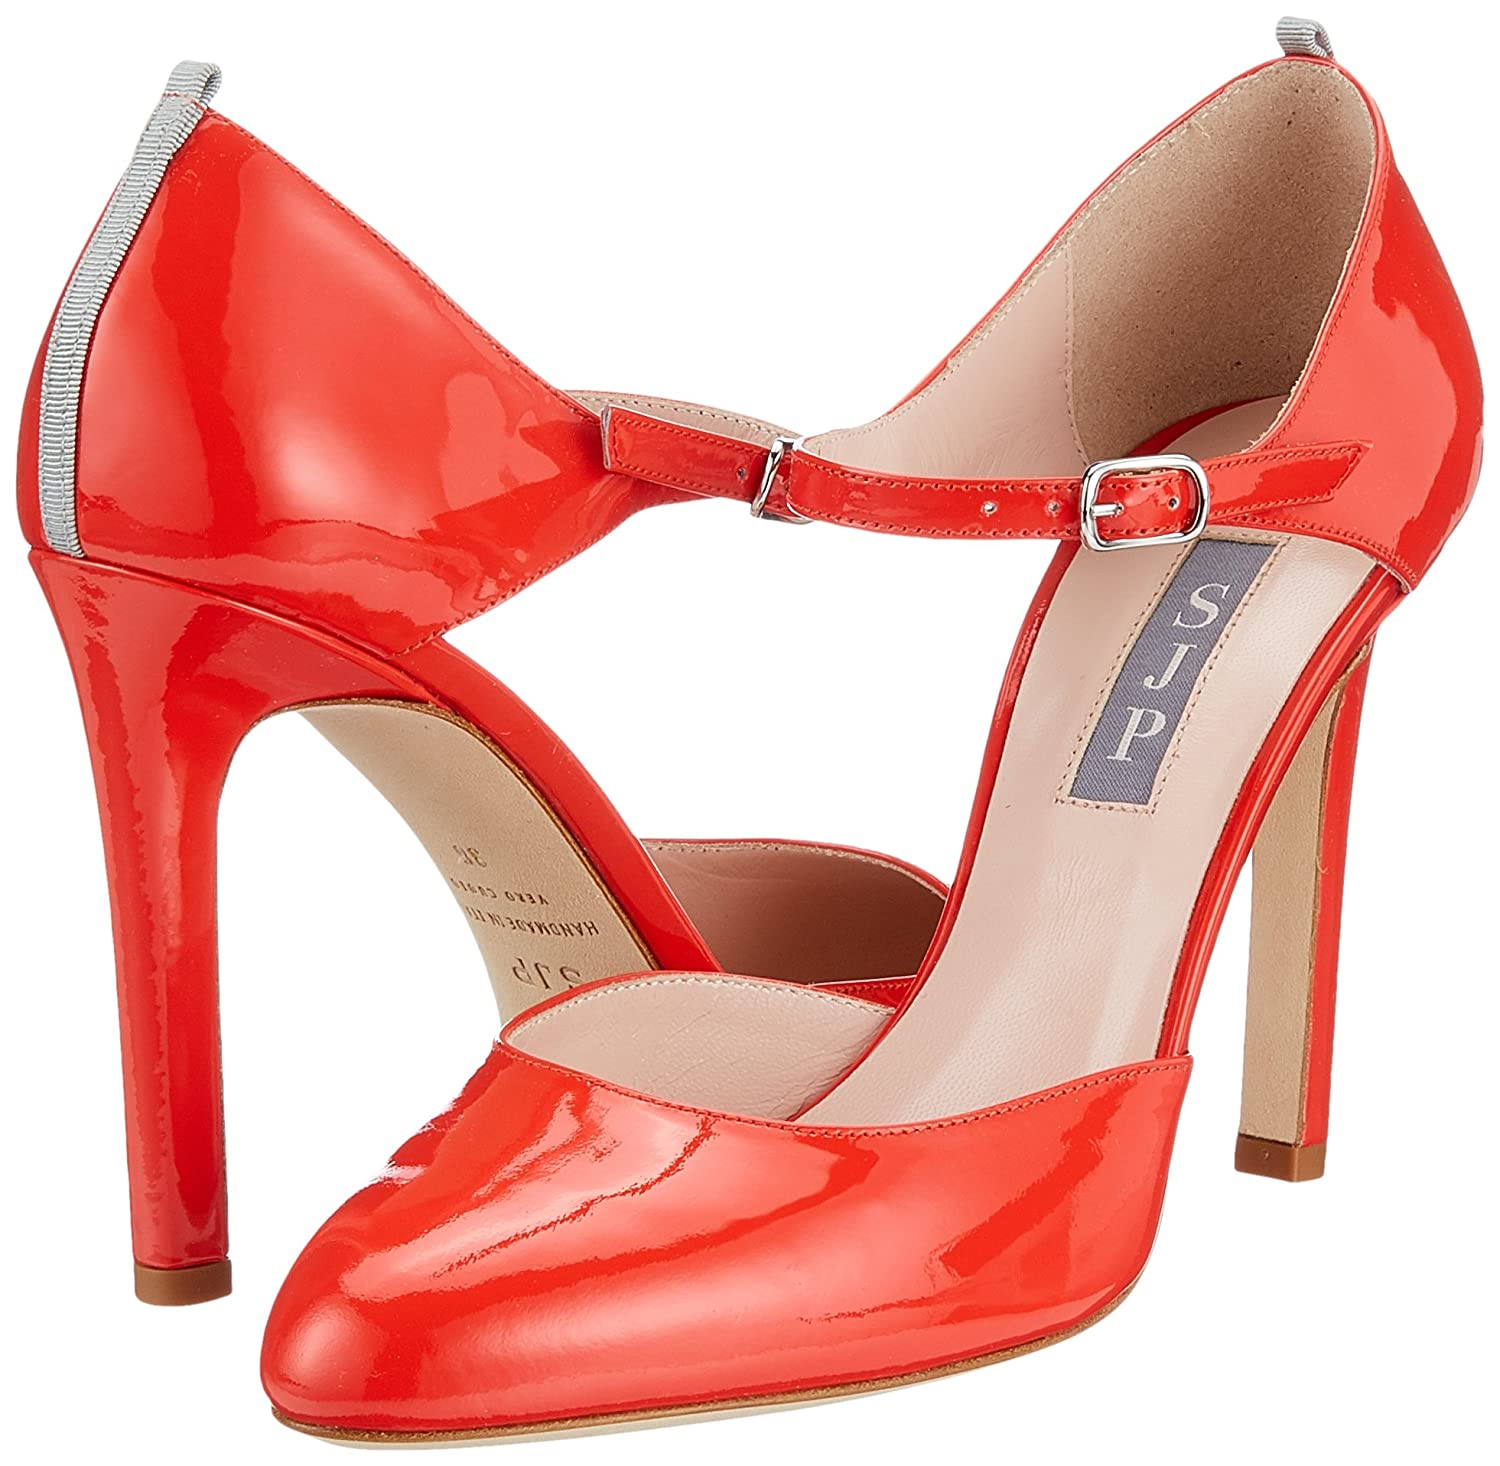 SJP by Sarah Jessica Parker Damen Campbell Patent) Riemchenpumps Rot (Cot ROT Patent) Campbell 083e92